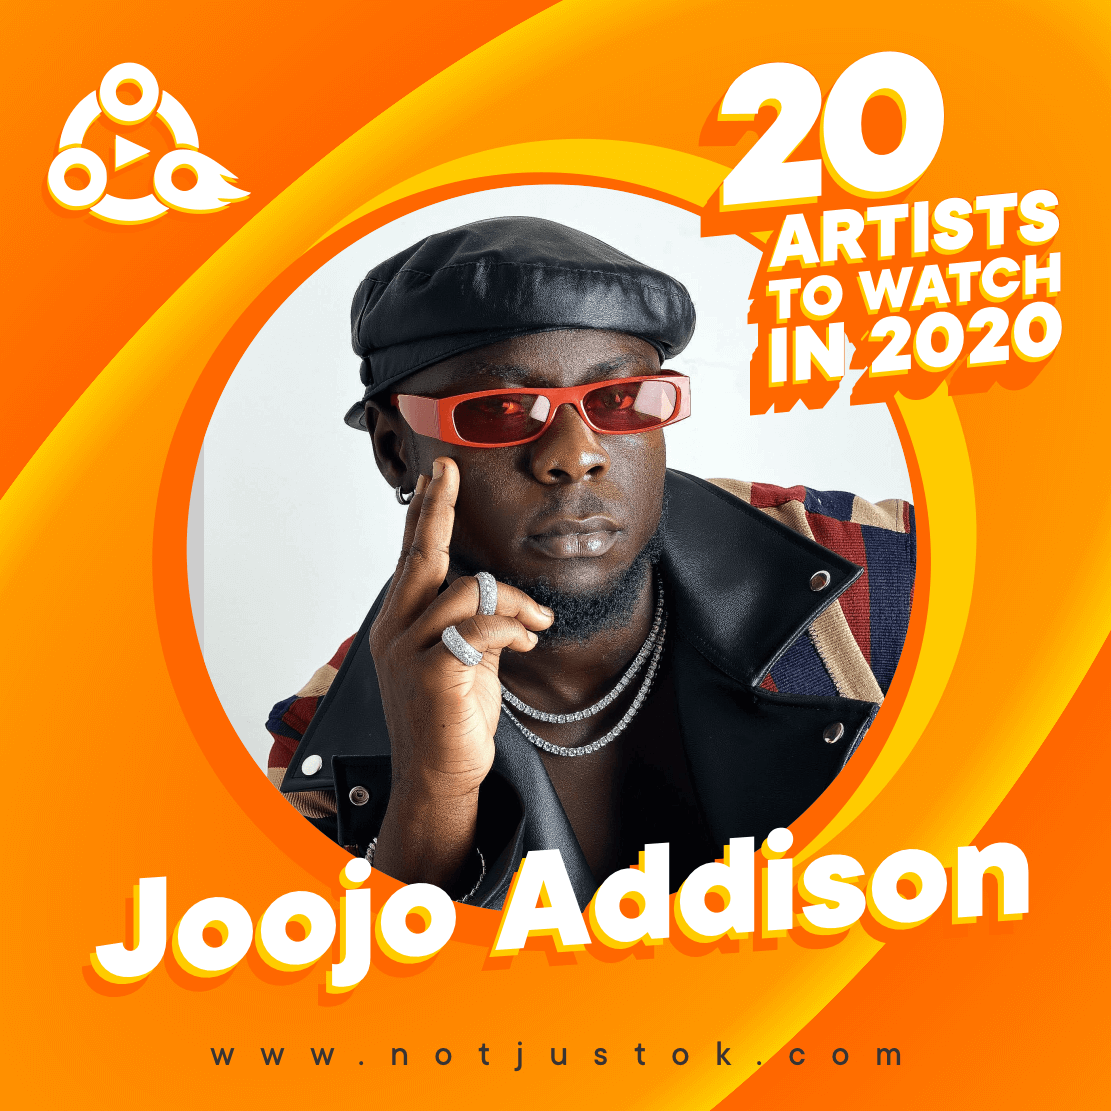 The 20 Artists To Watch In 2020 - Joojo Addison